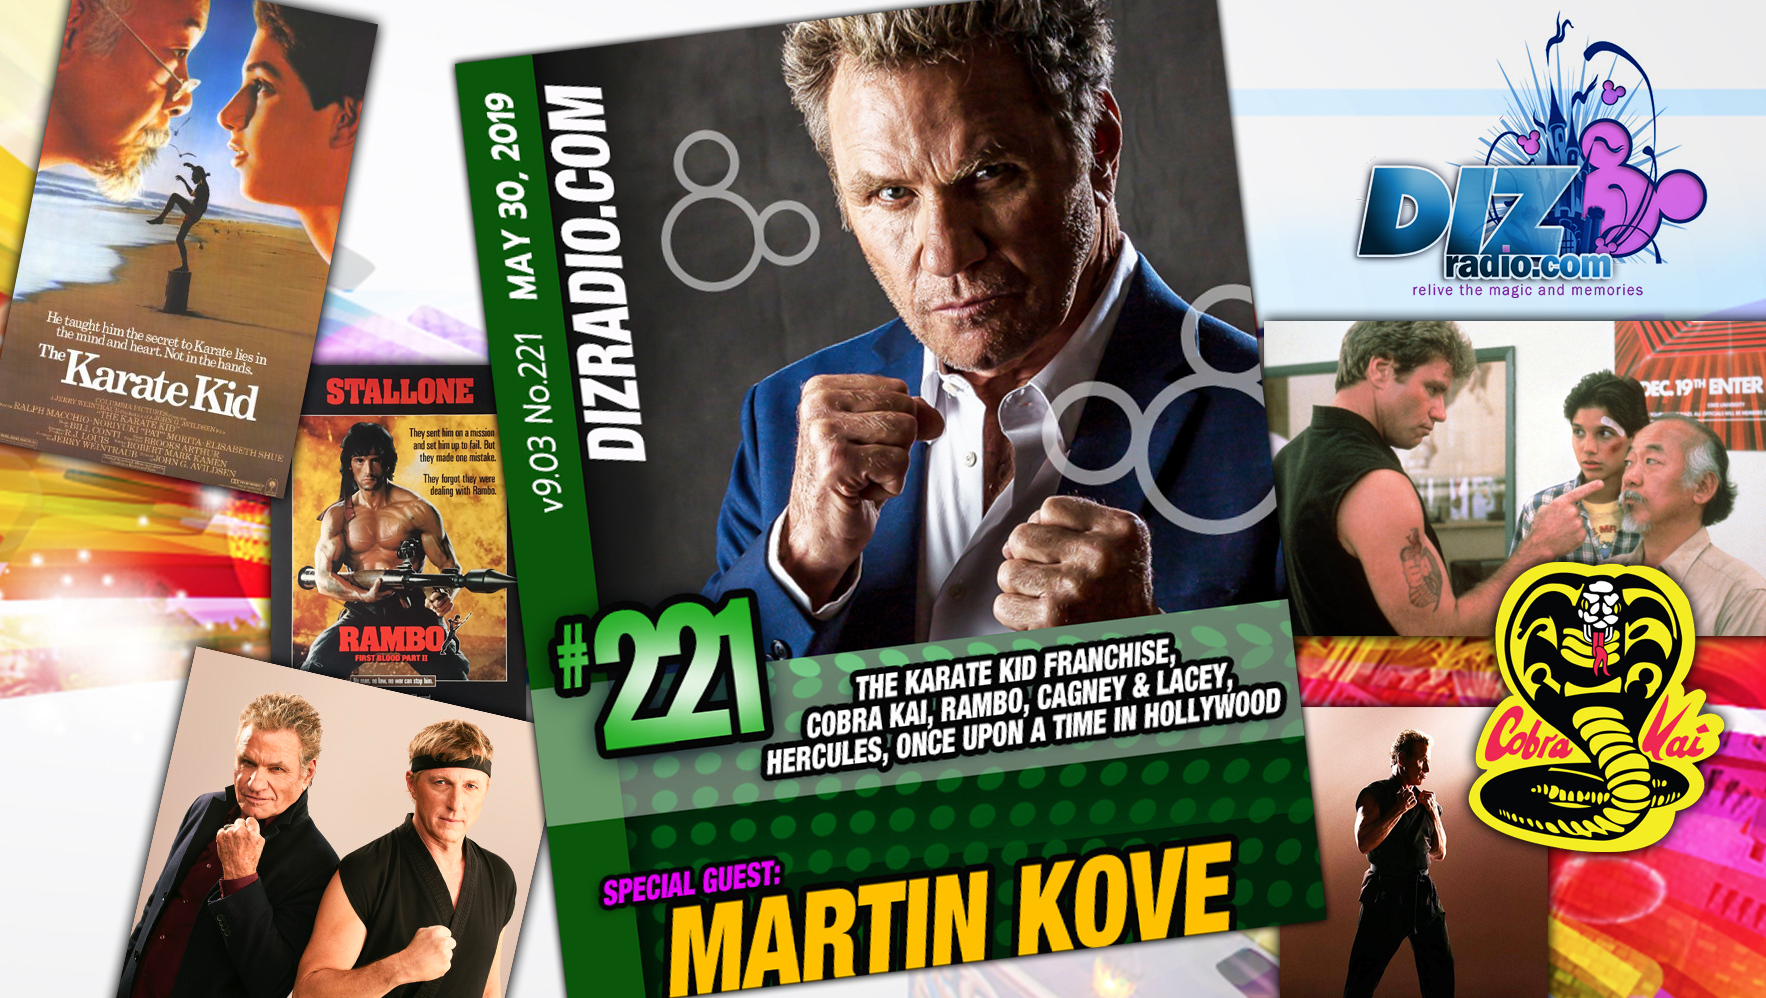 DisneyBlu's DizRadio Show #221 w/ Special Guest MARTIN KOVE (John Kreese in The Karate Kid Franchise, Cobra Kai, Rambo, Cagney & Lacey, Once Upon a Time in Hollywood) on DizRadio.com